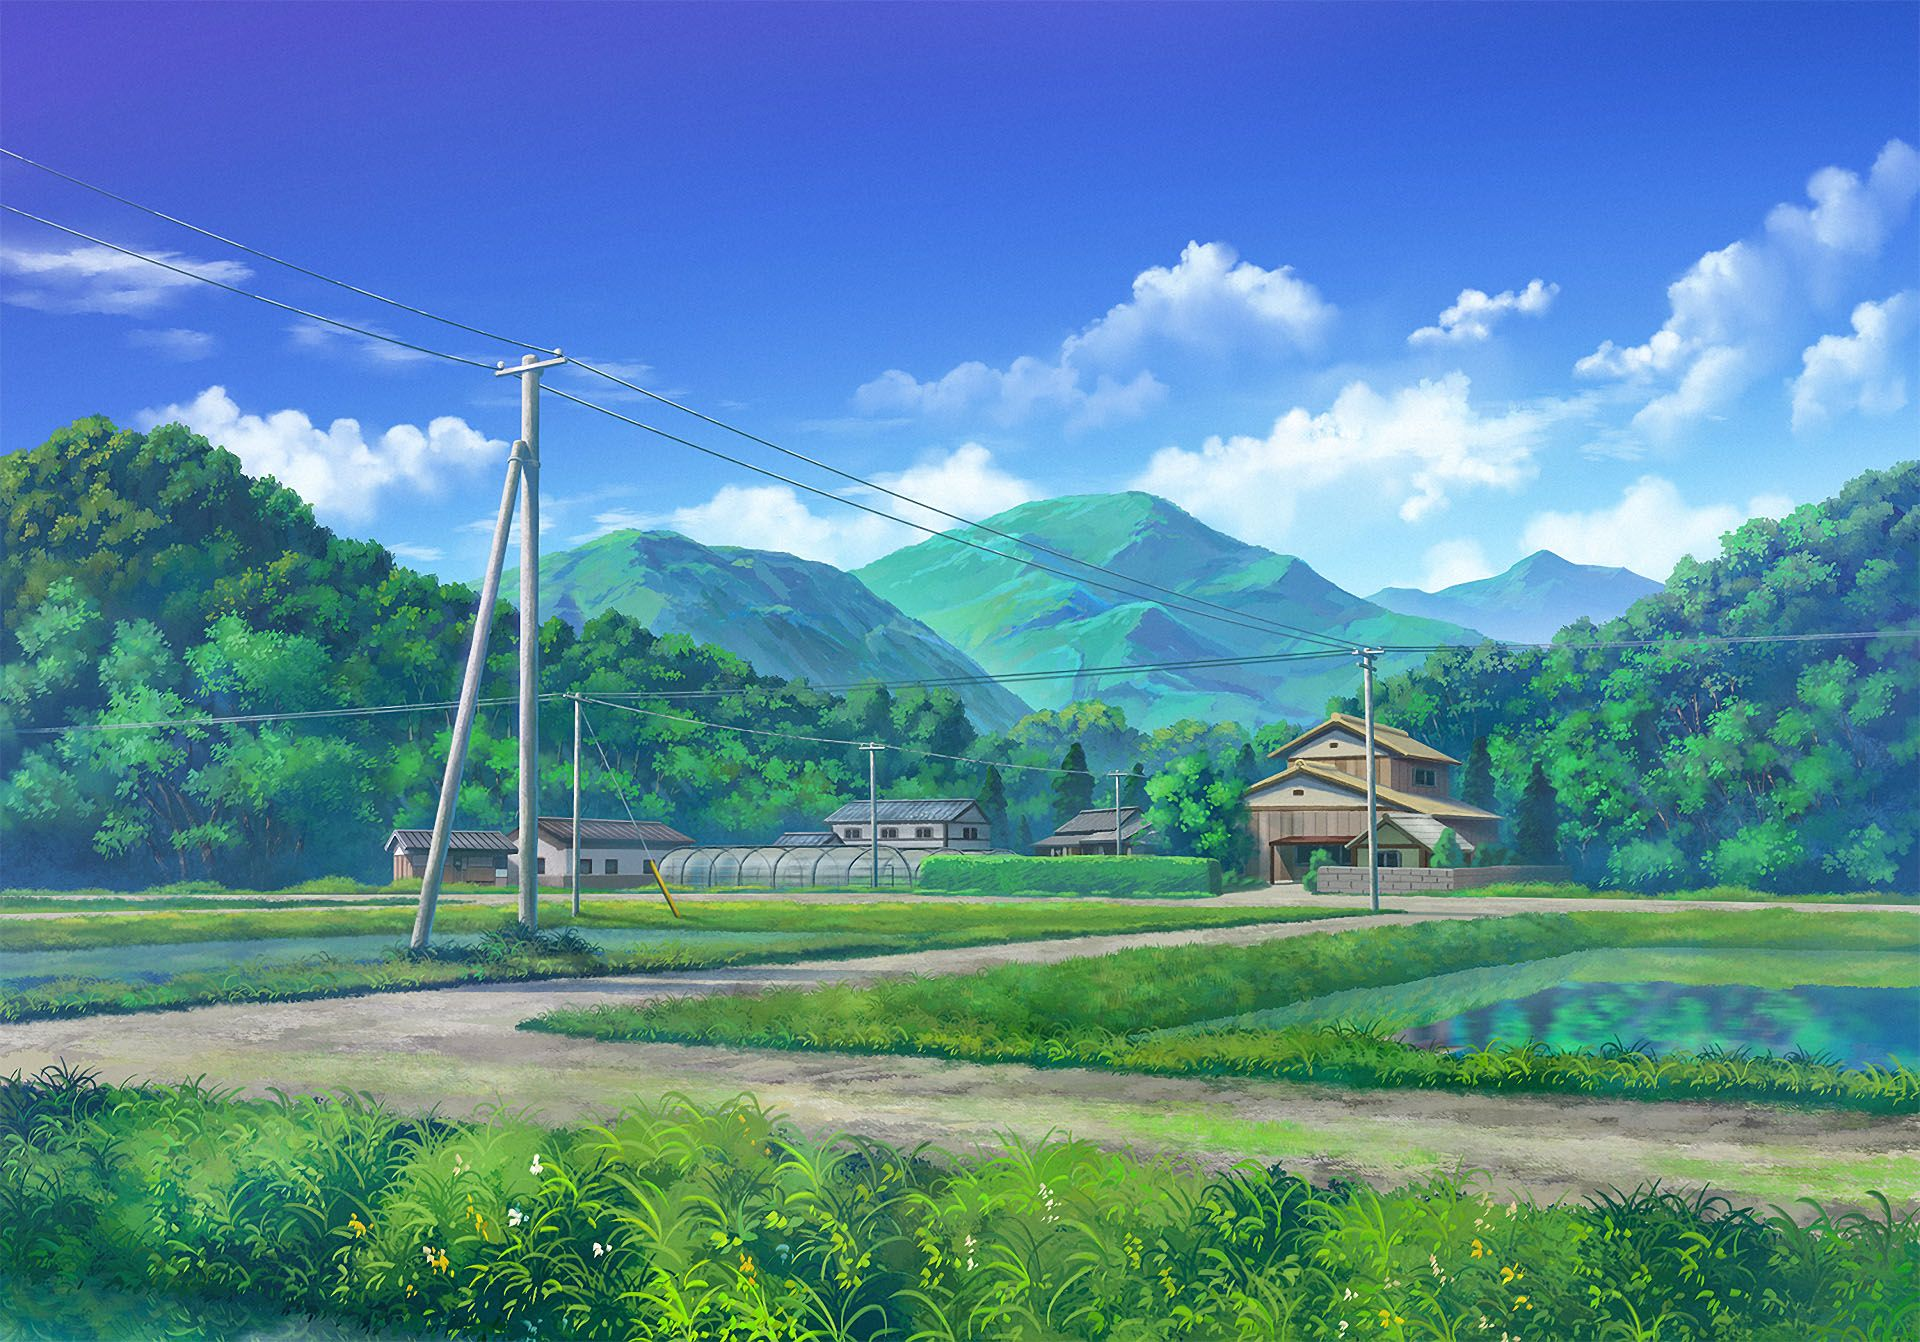 Countryside 1920x1342 Anime Scenery Japan Landscape Countryside Landscape